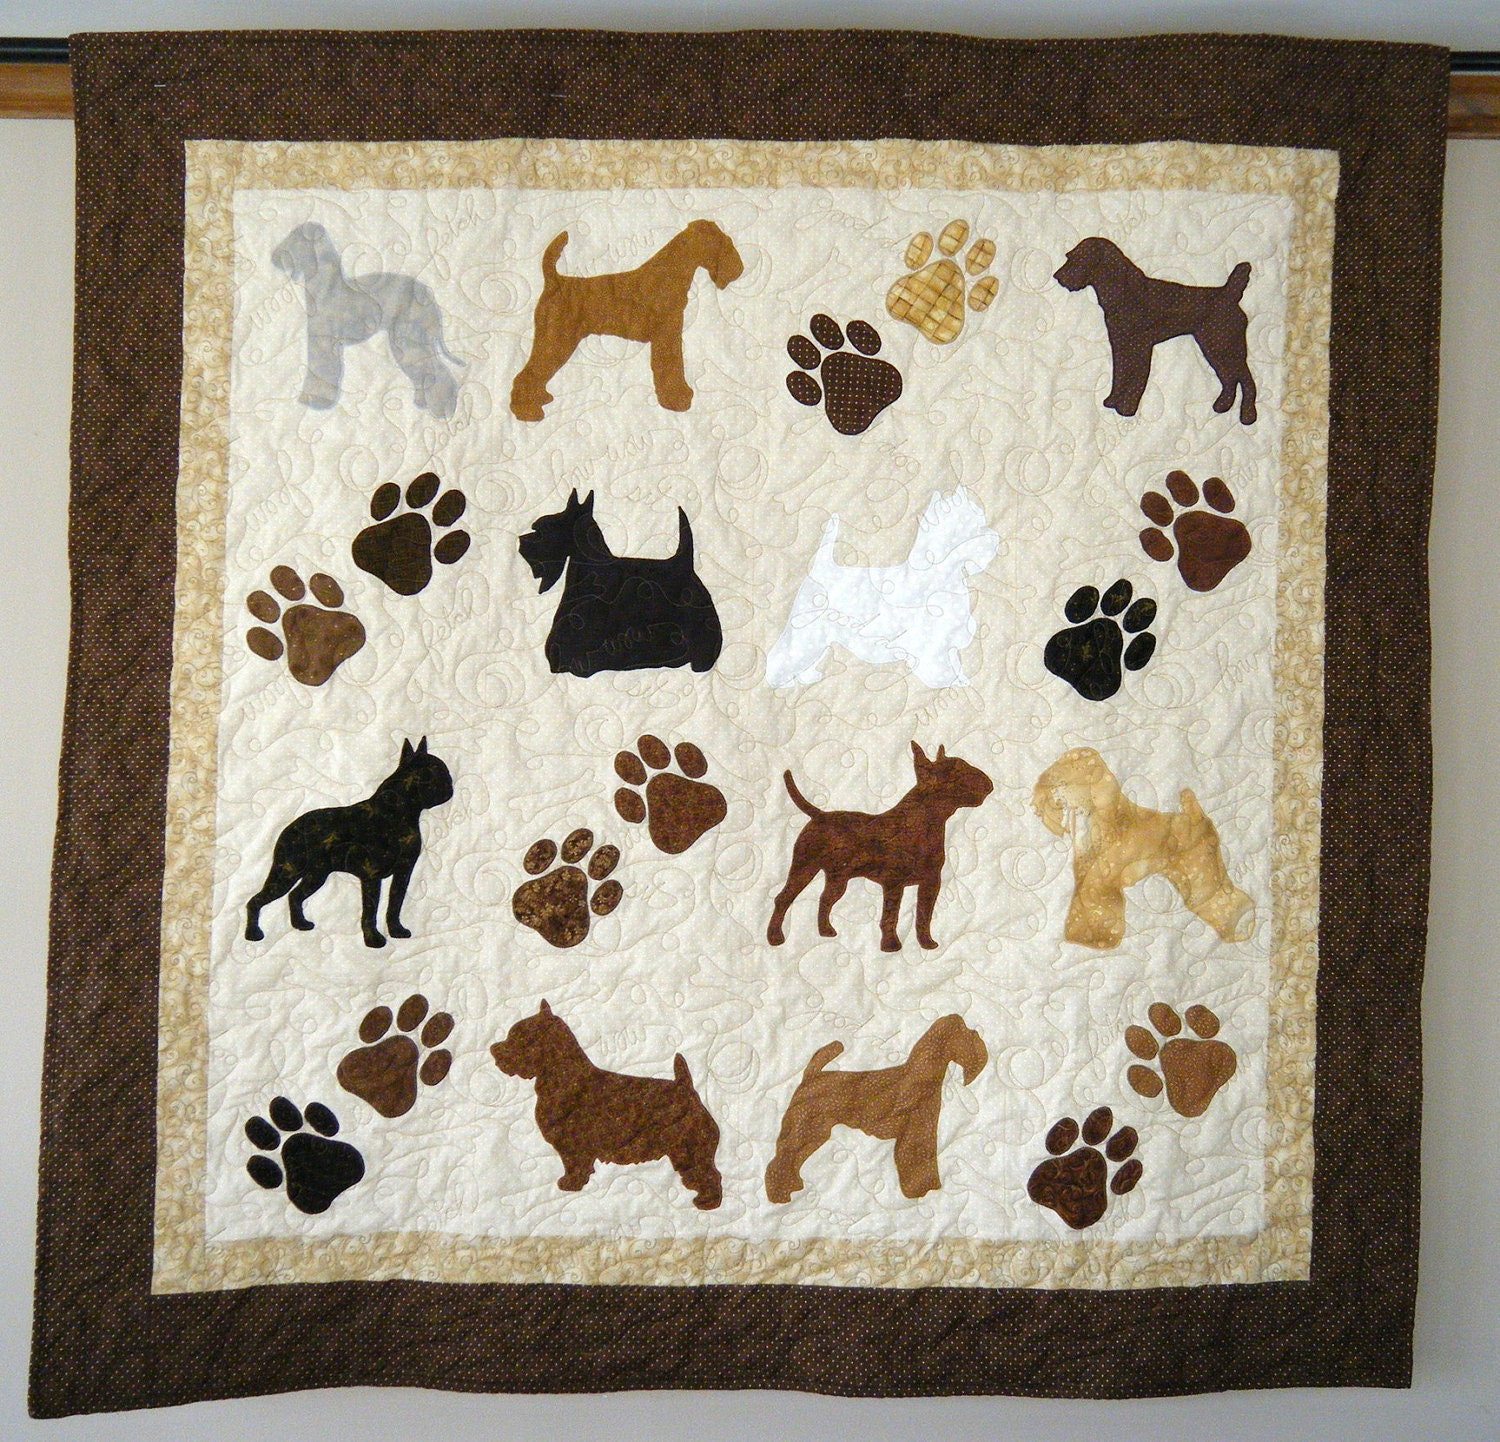 Terrier Dogs With Paw Prints Quilt Throw Bedlington Welsh